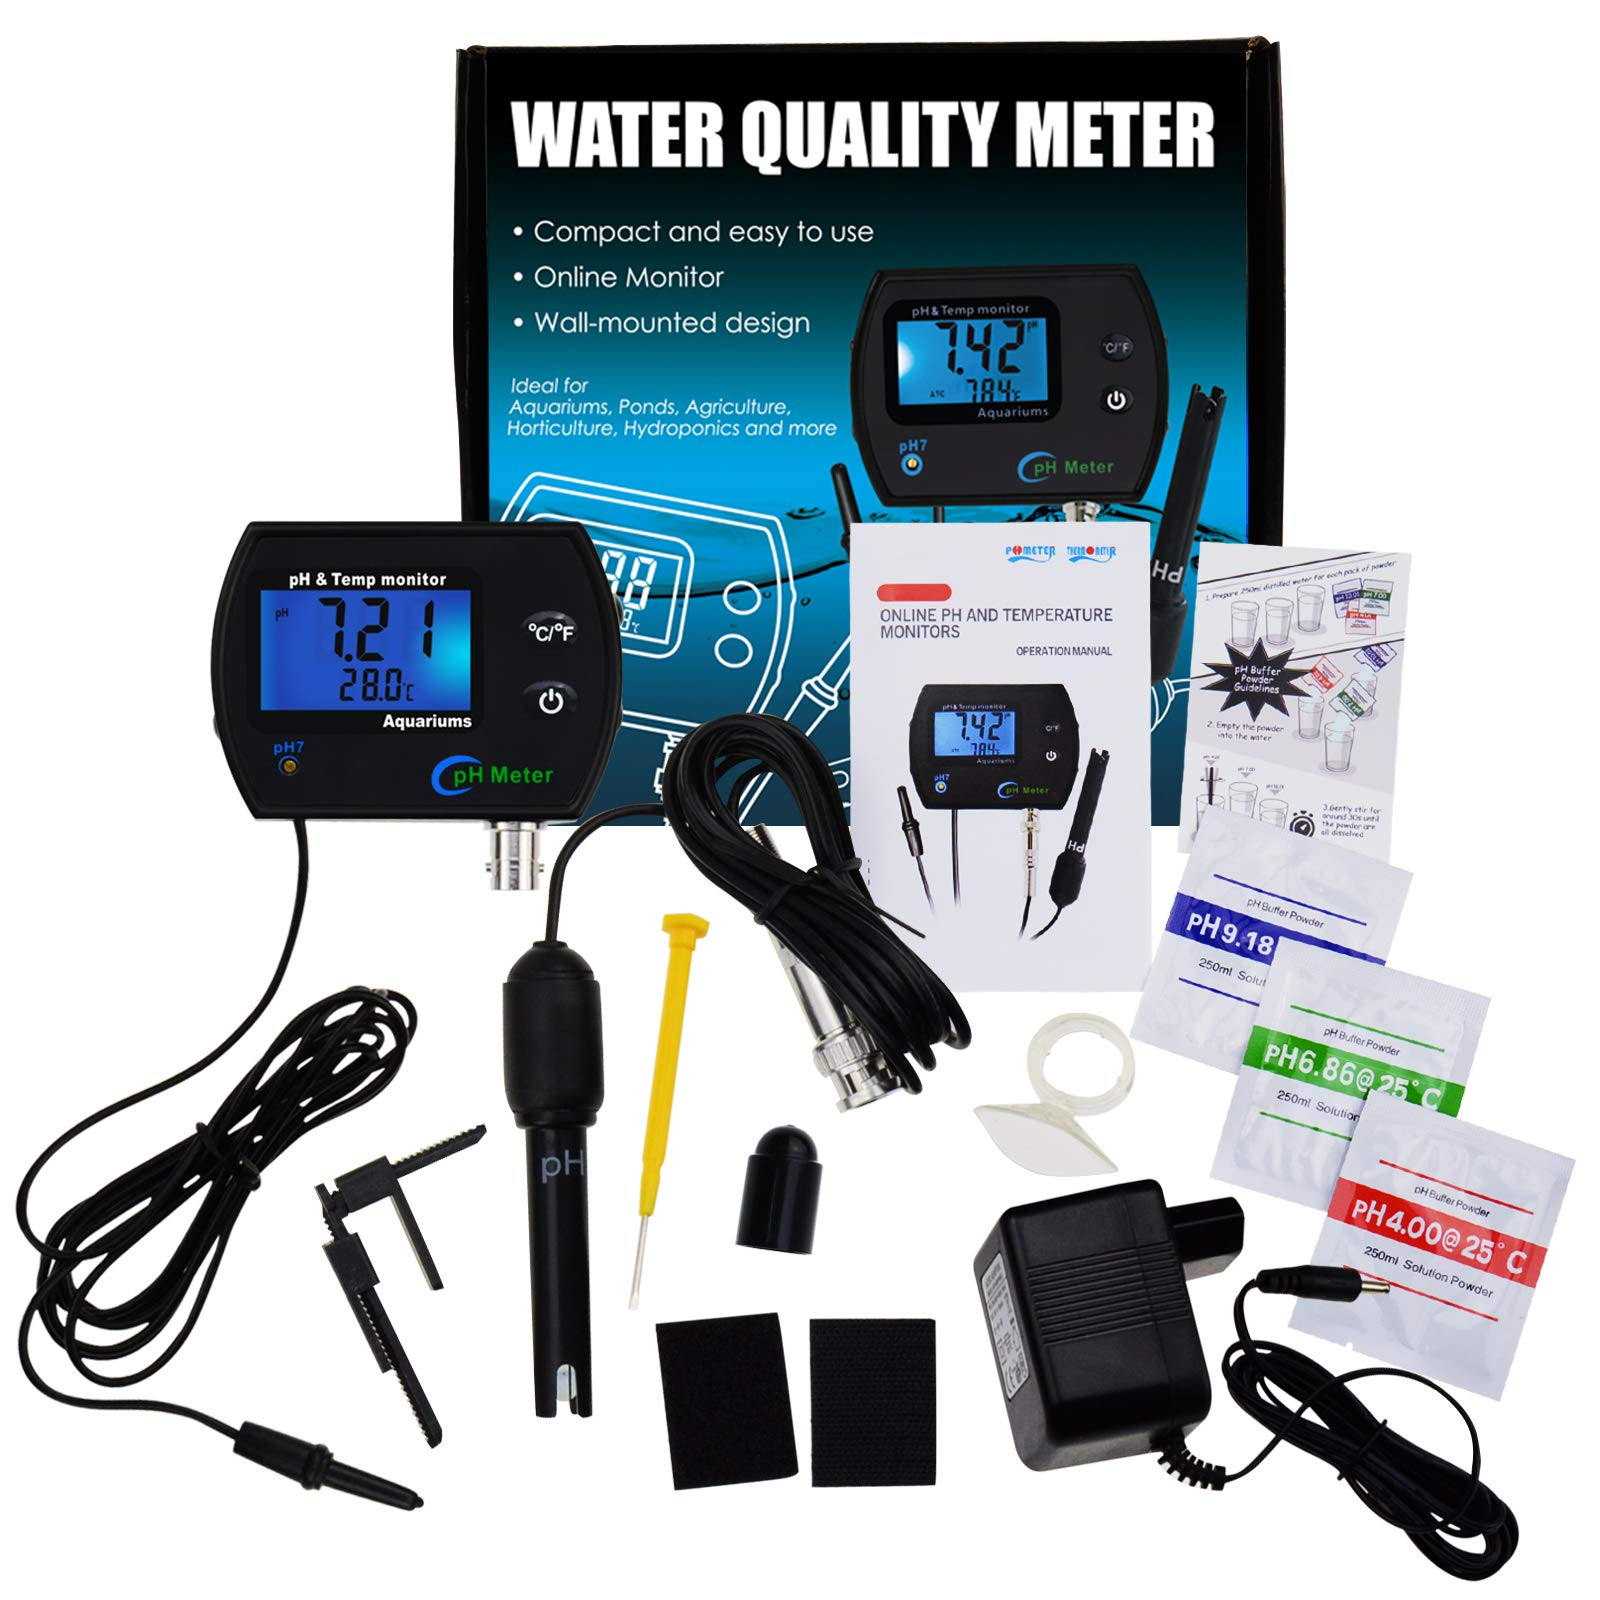 2-in-1 Combo pH & Temperature Meter Water Quality Tester Replaceable BNC pH Electrode for Aquariums Hydroponics Tanks Aquaculture Laboratory by DANOPLUS (Image #4)